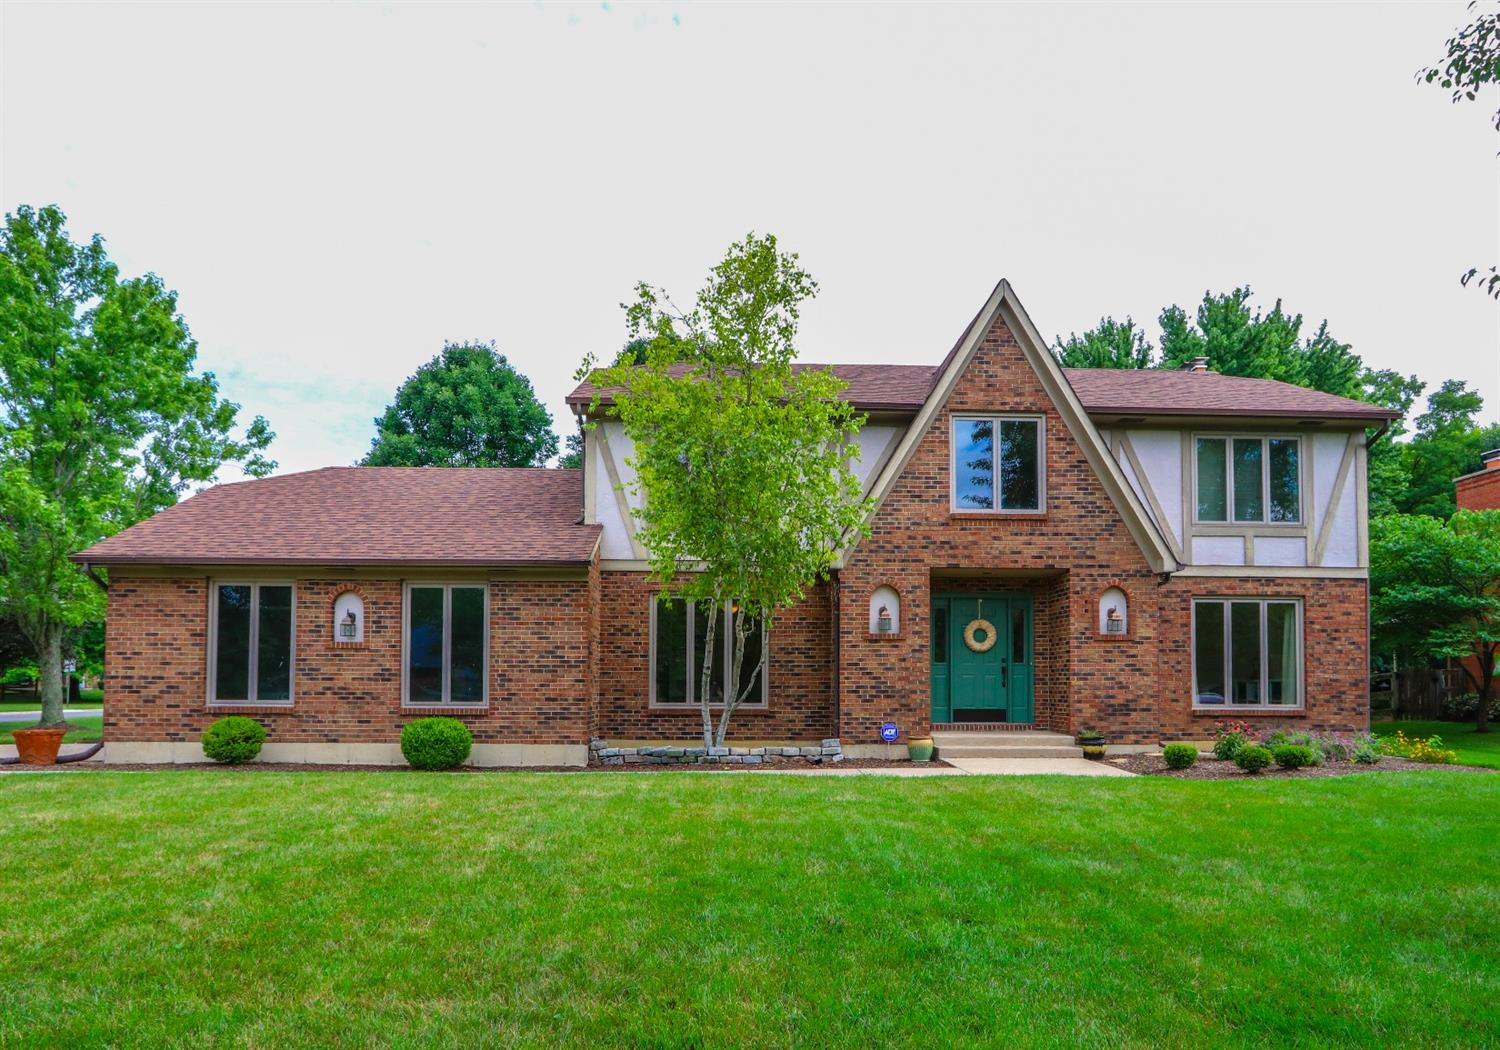 Property for sale at 8236 Maddox Drive, West Chester,  Ohio 45069